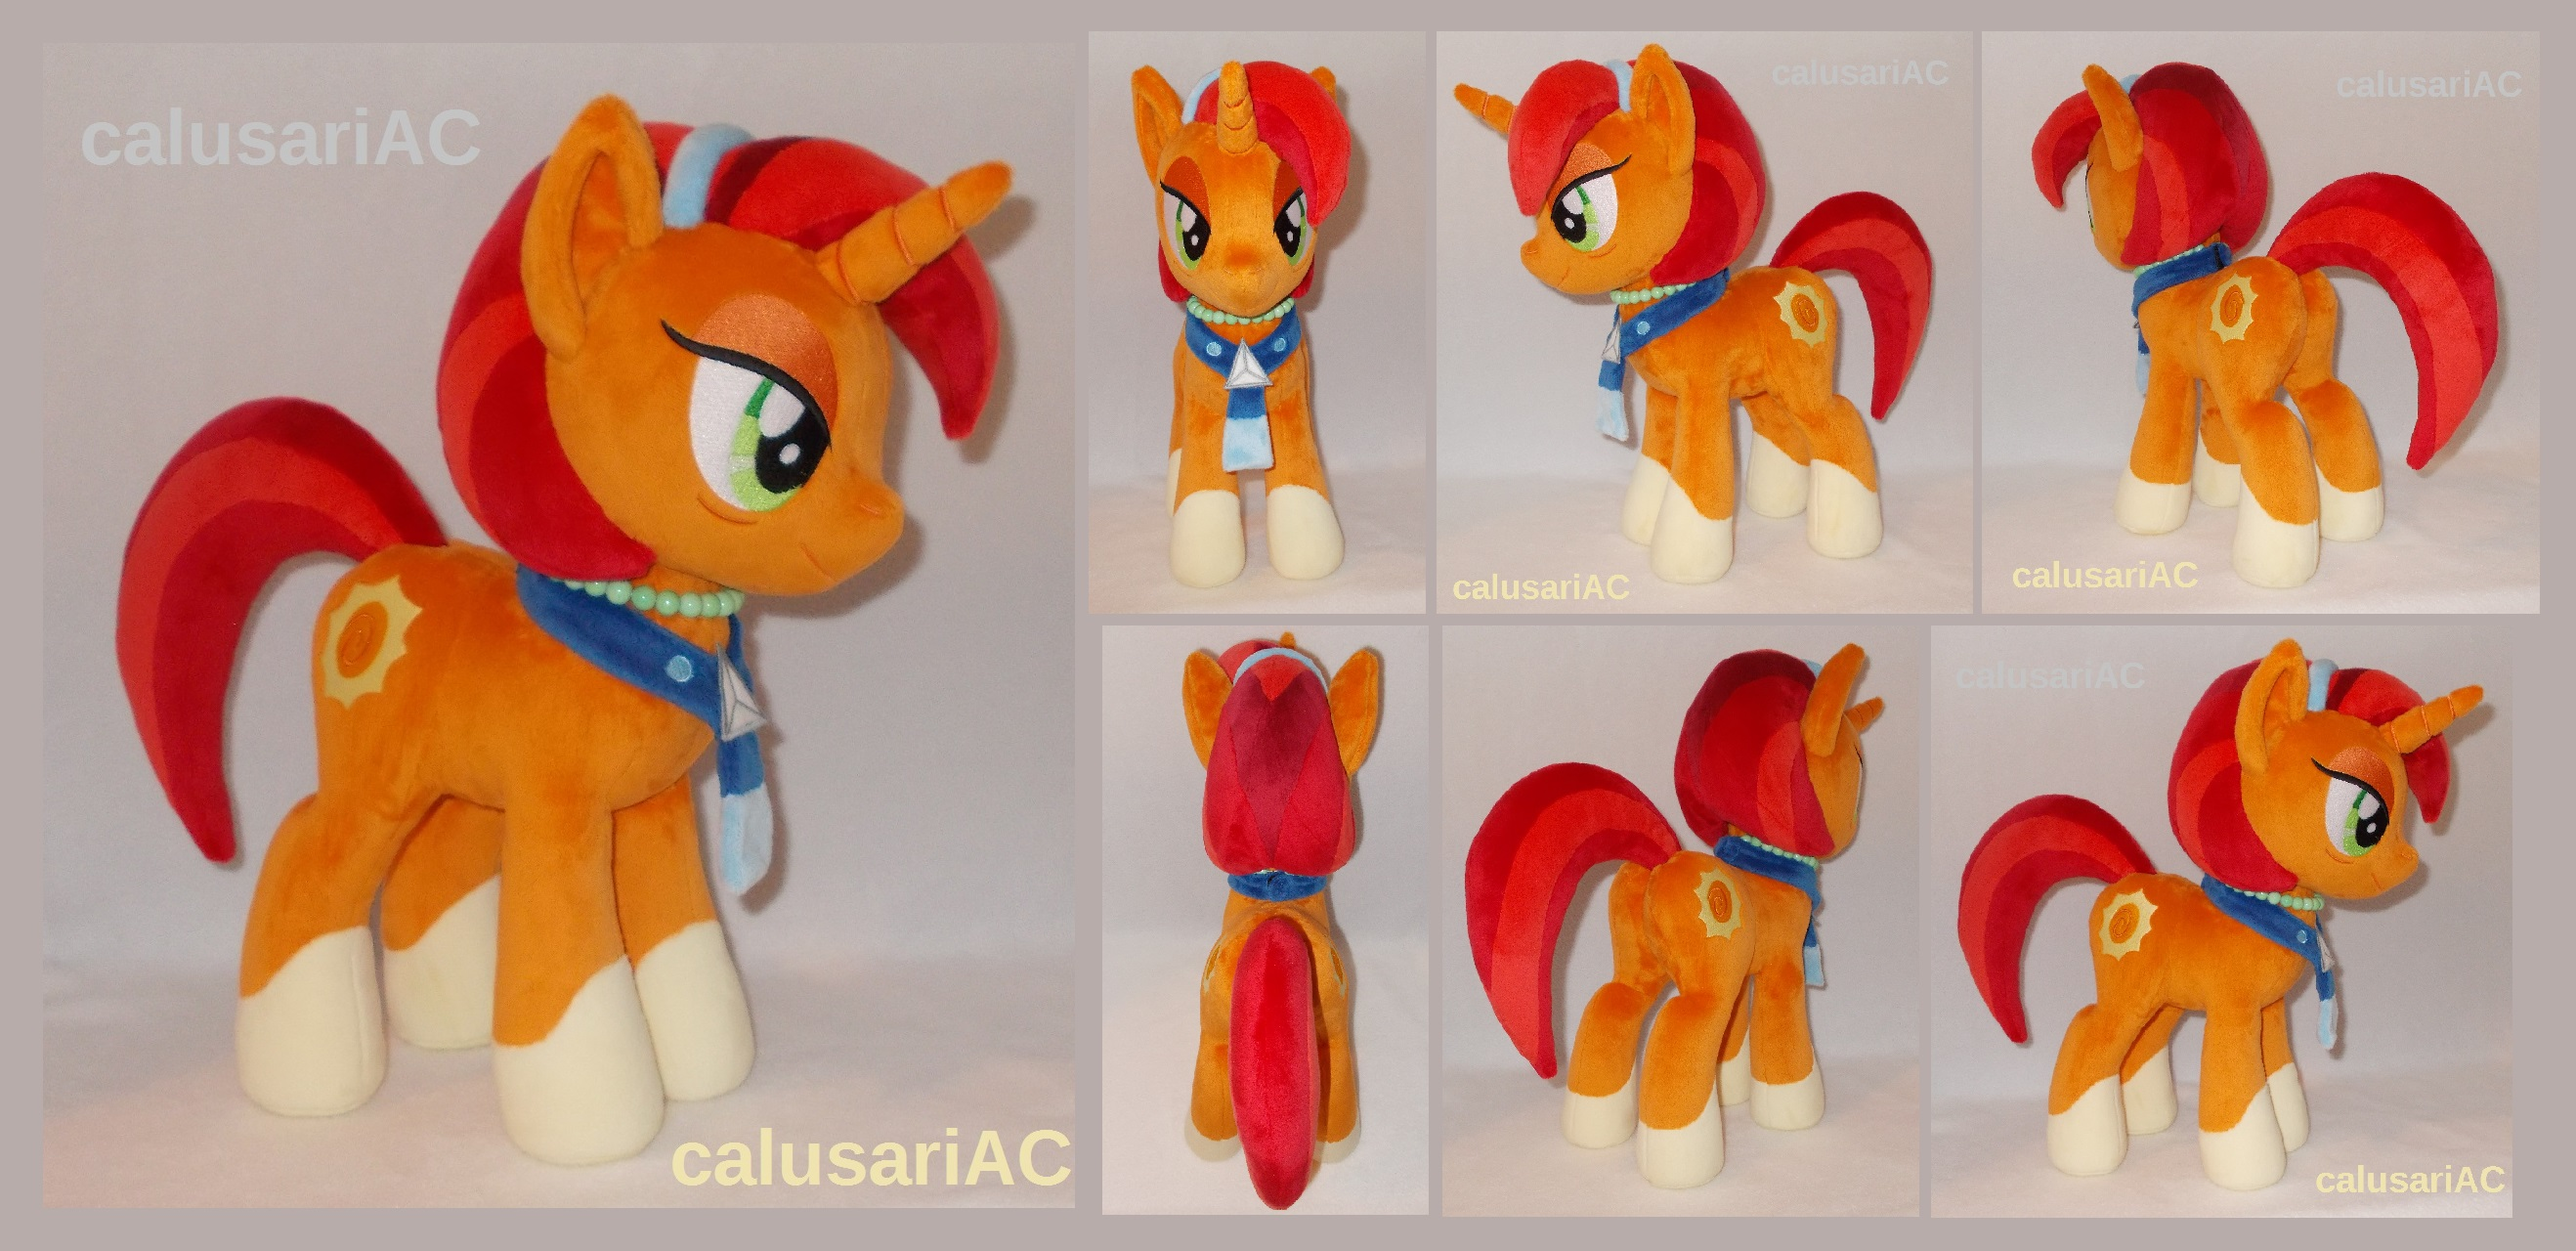 Stellar Flare (commission) by calusariAC